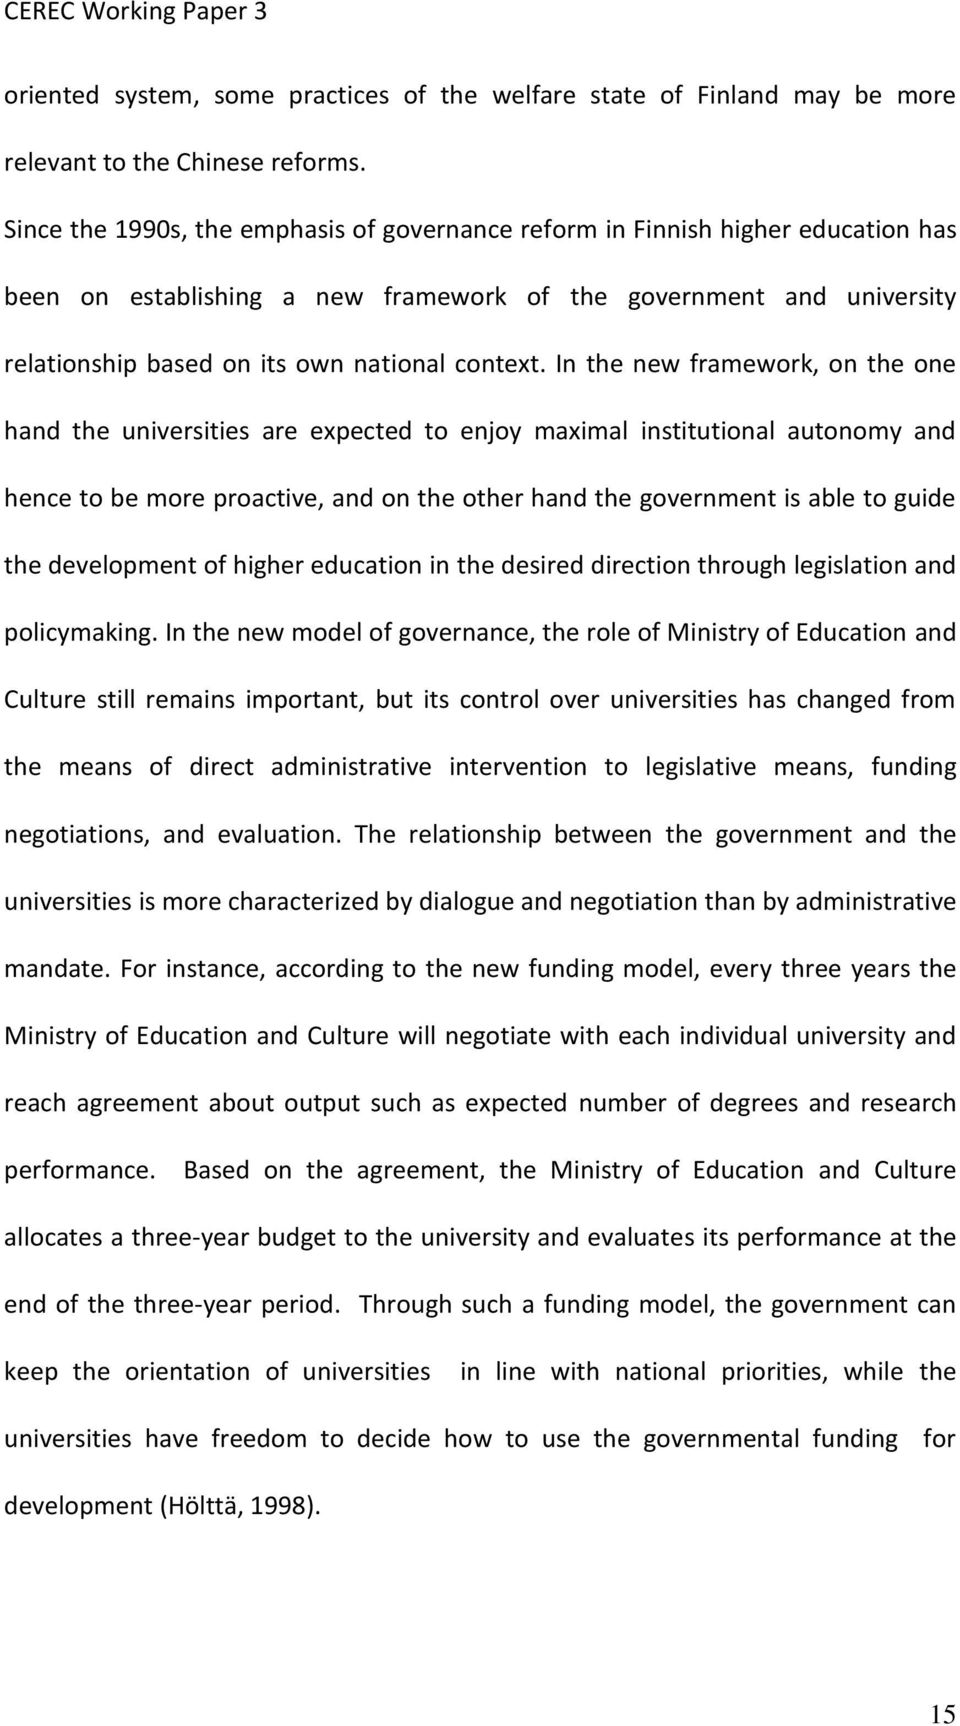 In the new framework, on the one hand the universities are expected to enjoy maximal institutional autonomy and hence to be more proactive, and on the other hand the government is able to guide the